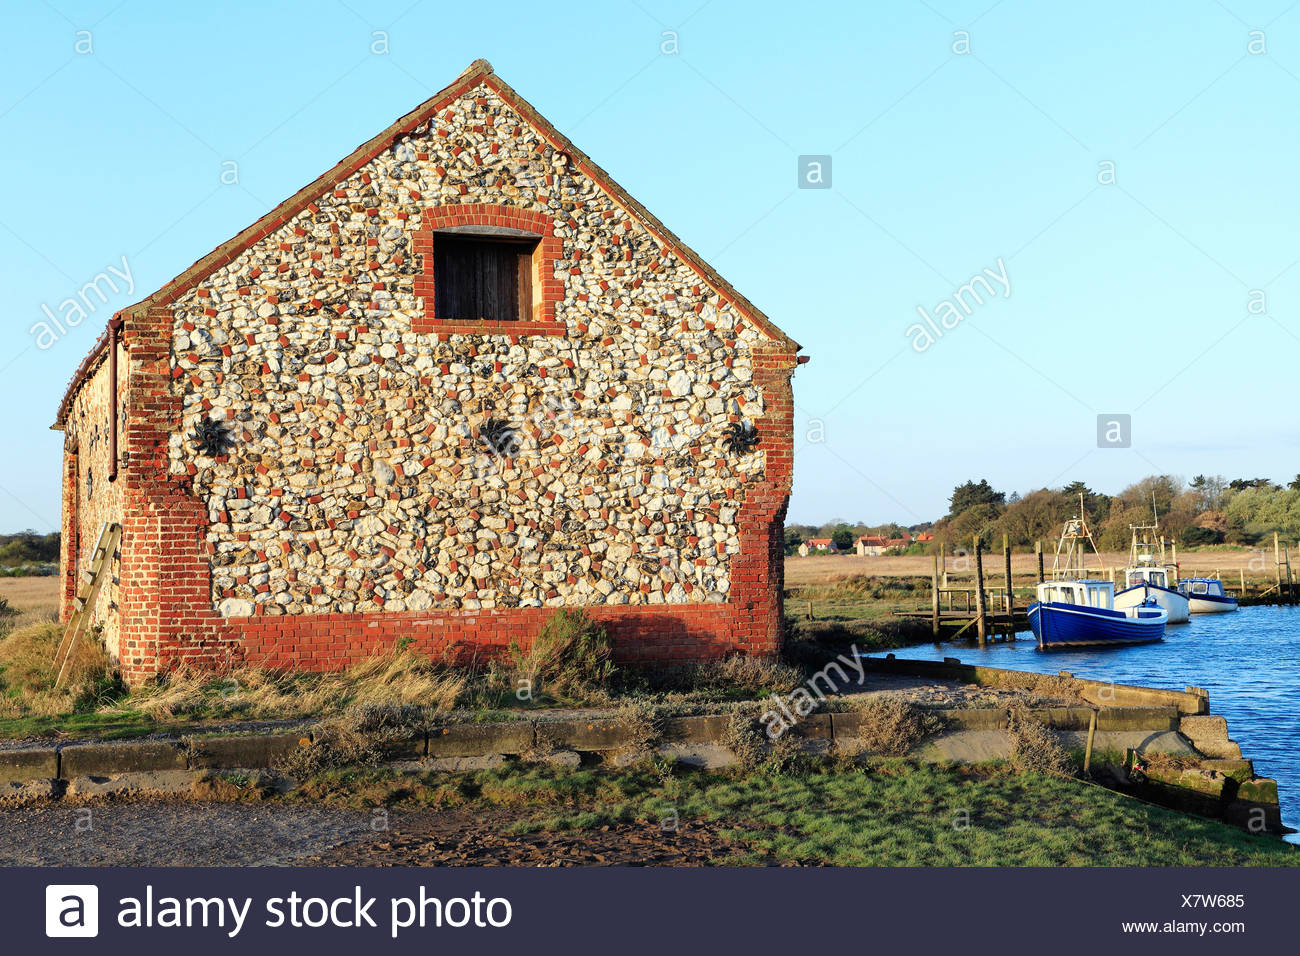 Thornham Creek, Coal Barn and Harbour, Norfolk England UK English coast coastal scenery - Stock Image